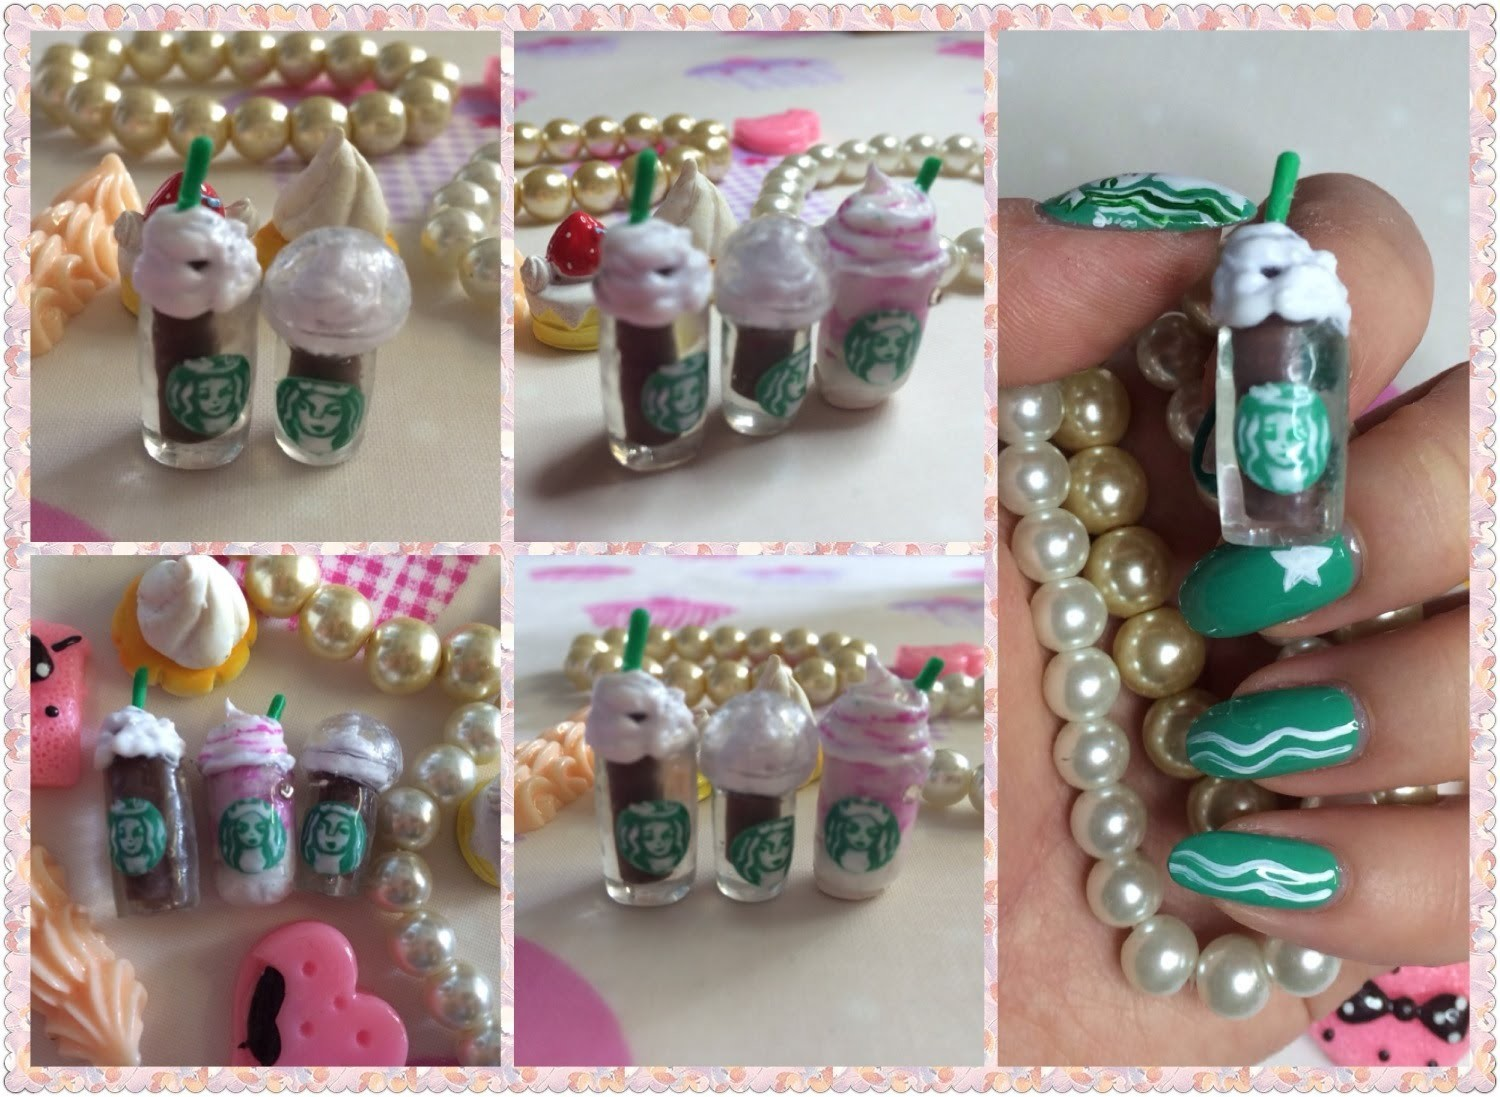 3D Nail Art Tutorial~~How To Make 3D Starbucks Drink